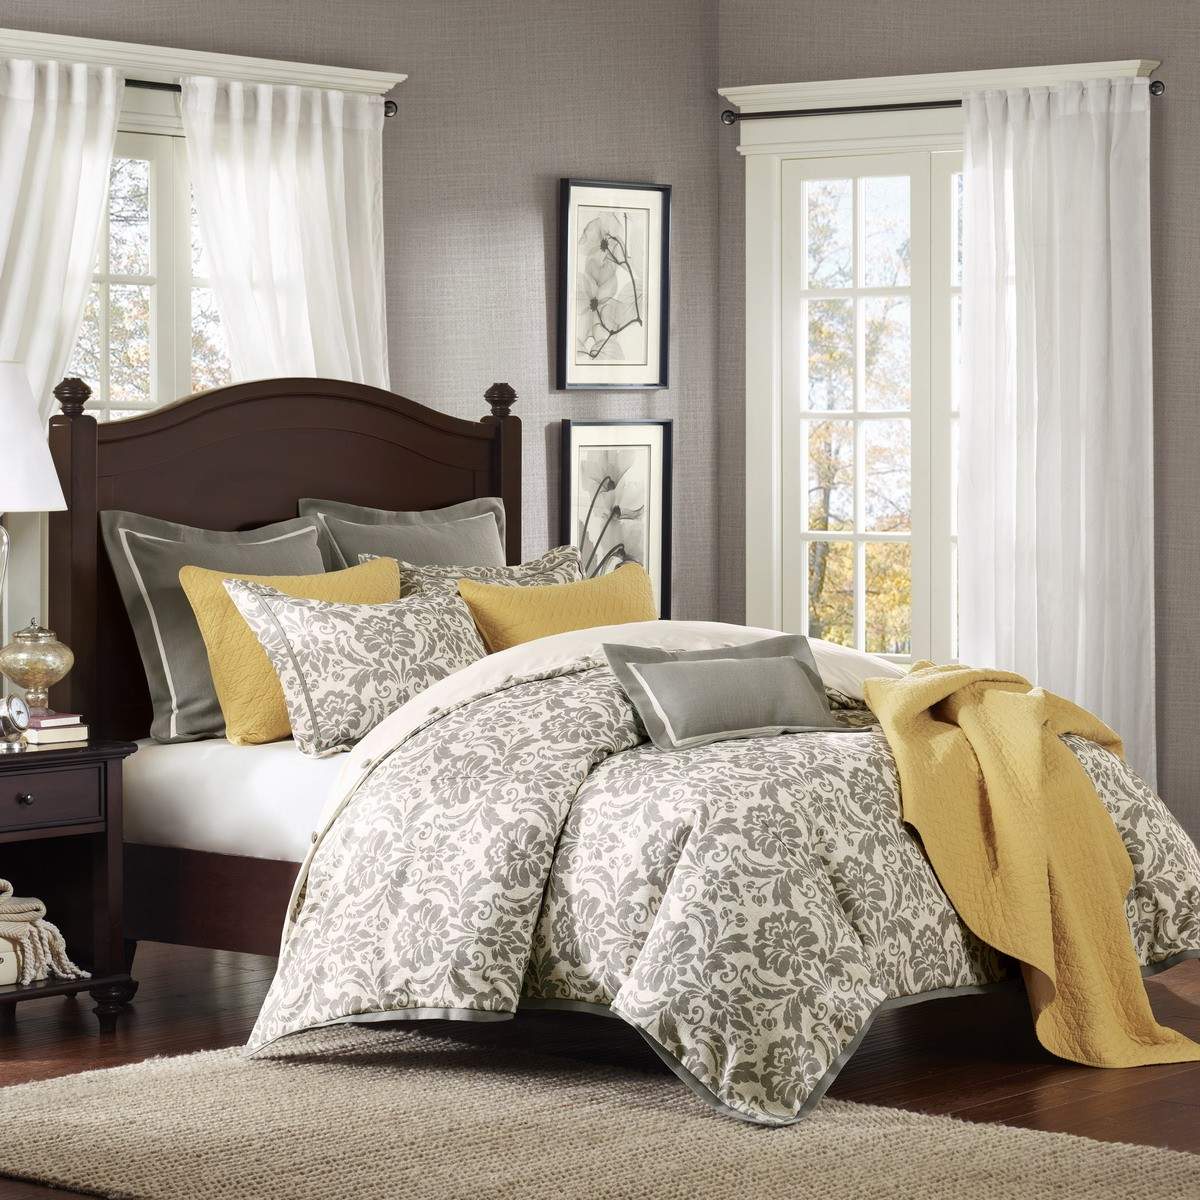 Grey king size bedding ideas homesfeed for Bedroom bedding ideas